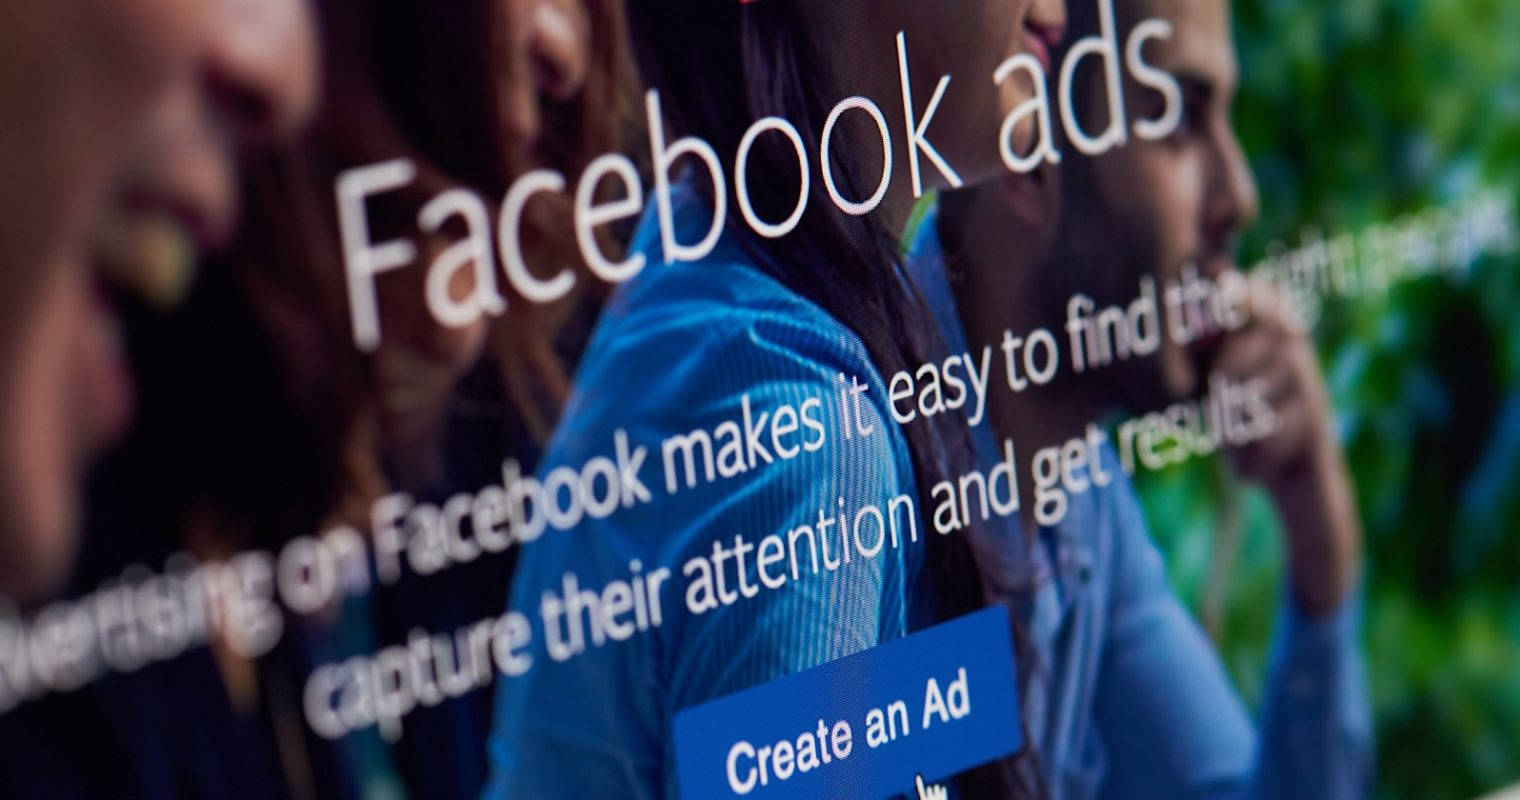 Facebook Makes Changes to Housing, Employment, and Credit Ads